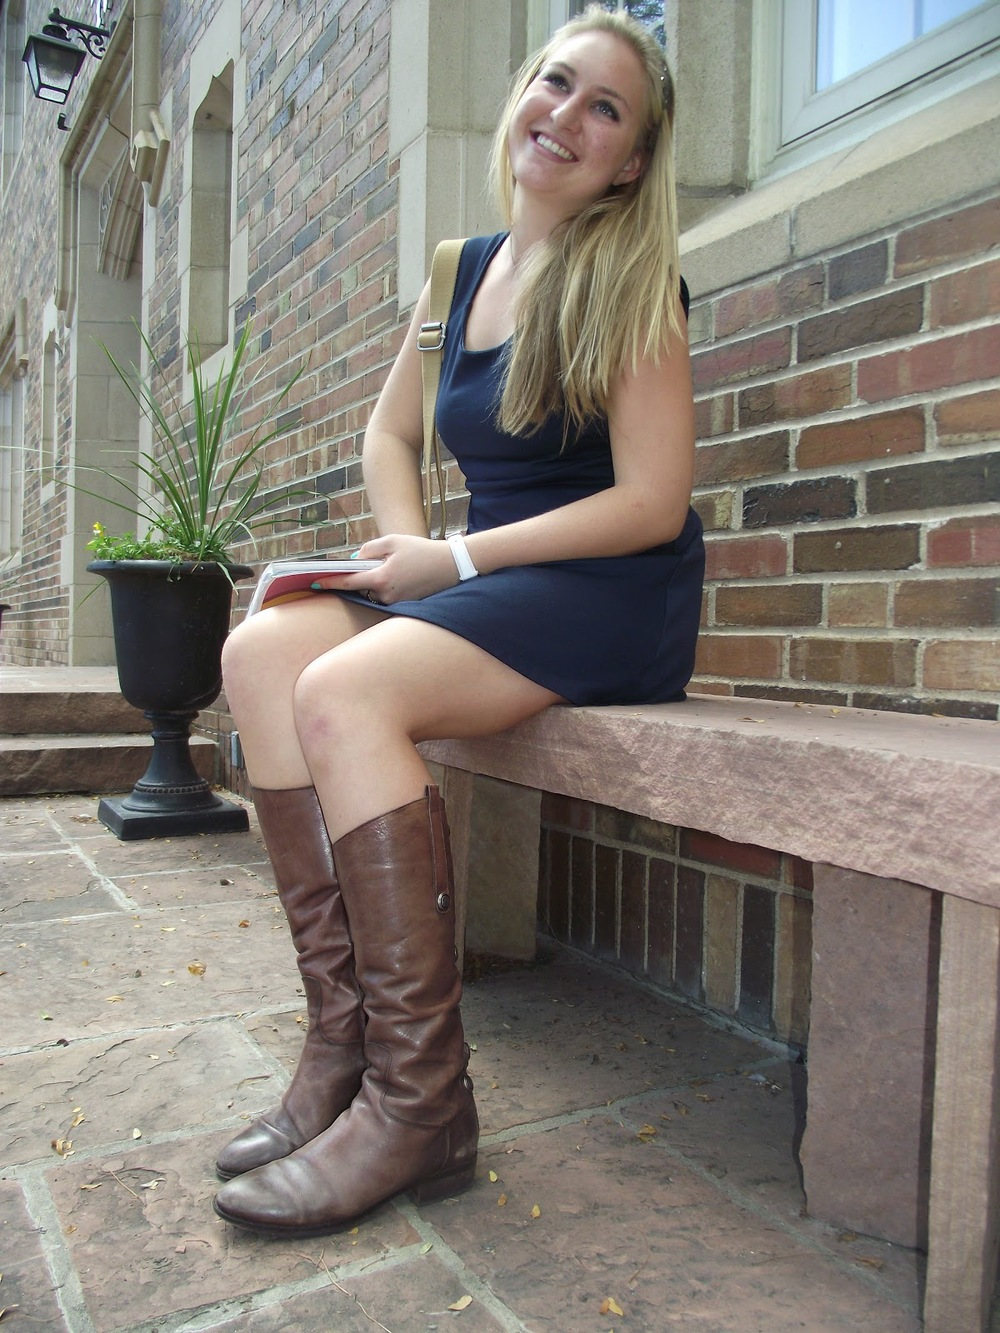 Kacey Paulin, CU Boulder Student wearing a blue dress and multicoloured patch bag with brown boots.